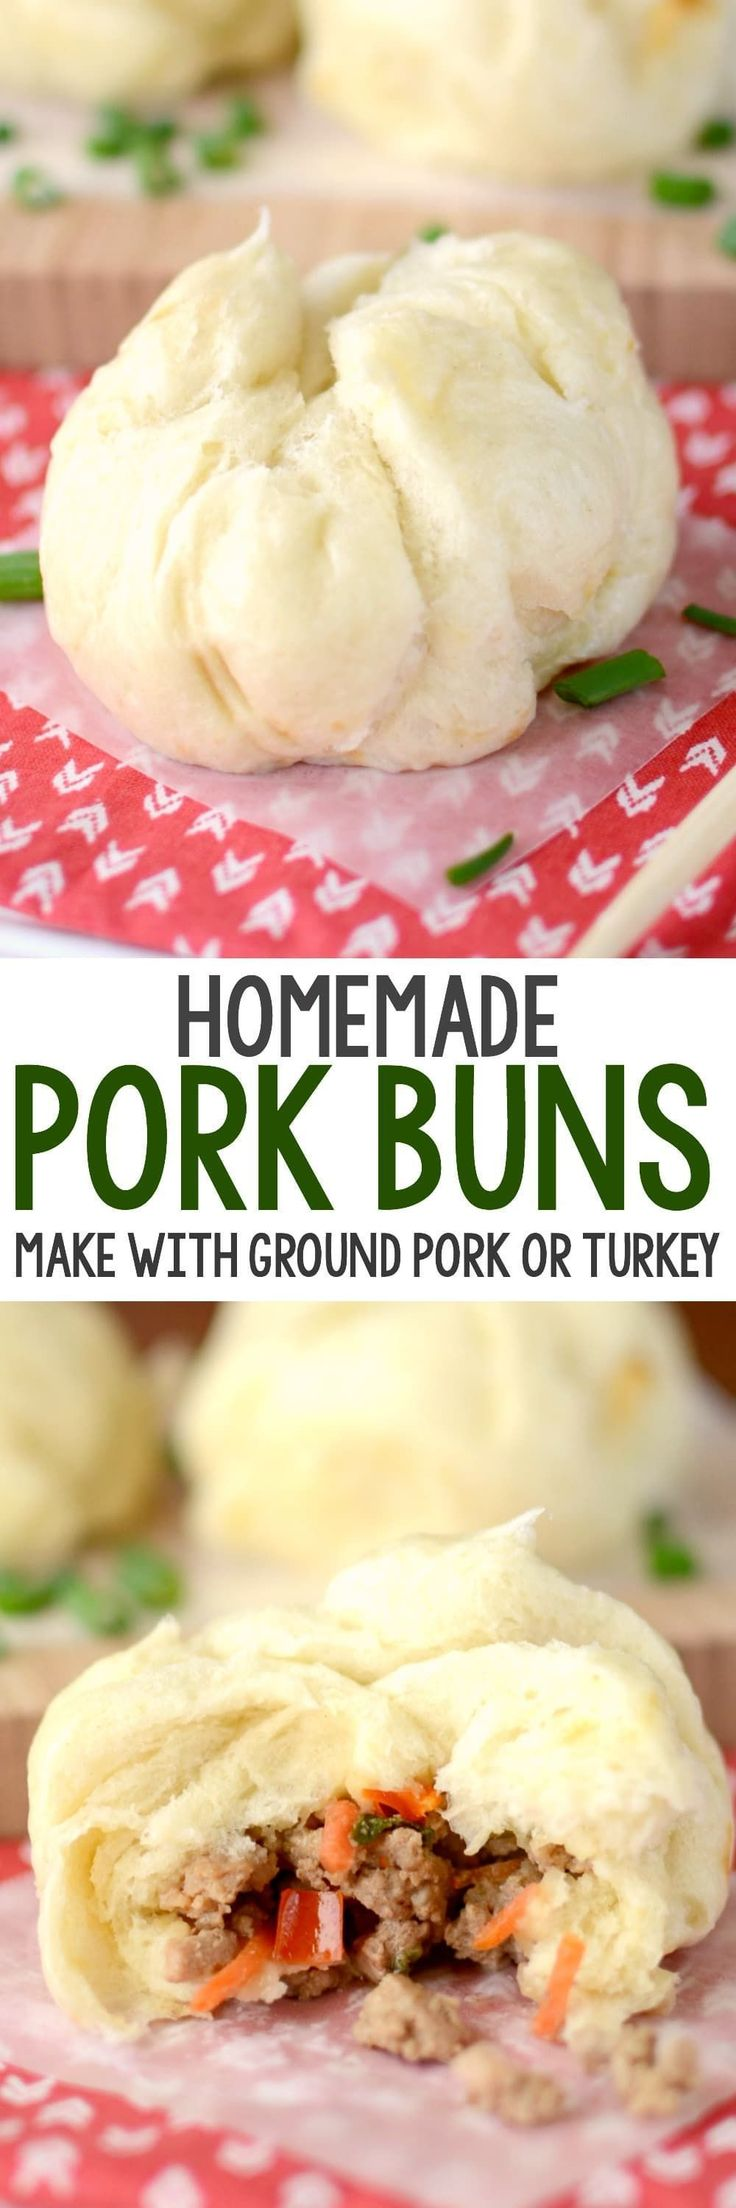 Homemade Pork Buns are better than takeout! This EASY recipe makes your favorite Chinese food at home using ground turkey or pork. We love these! #chinesefoodrecipes